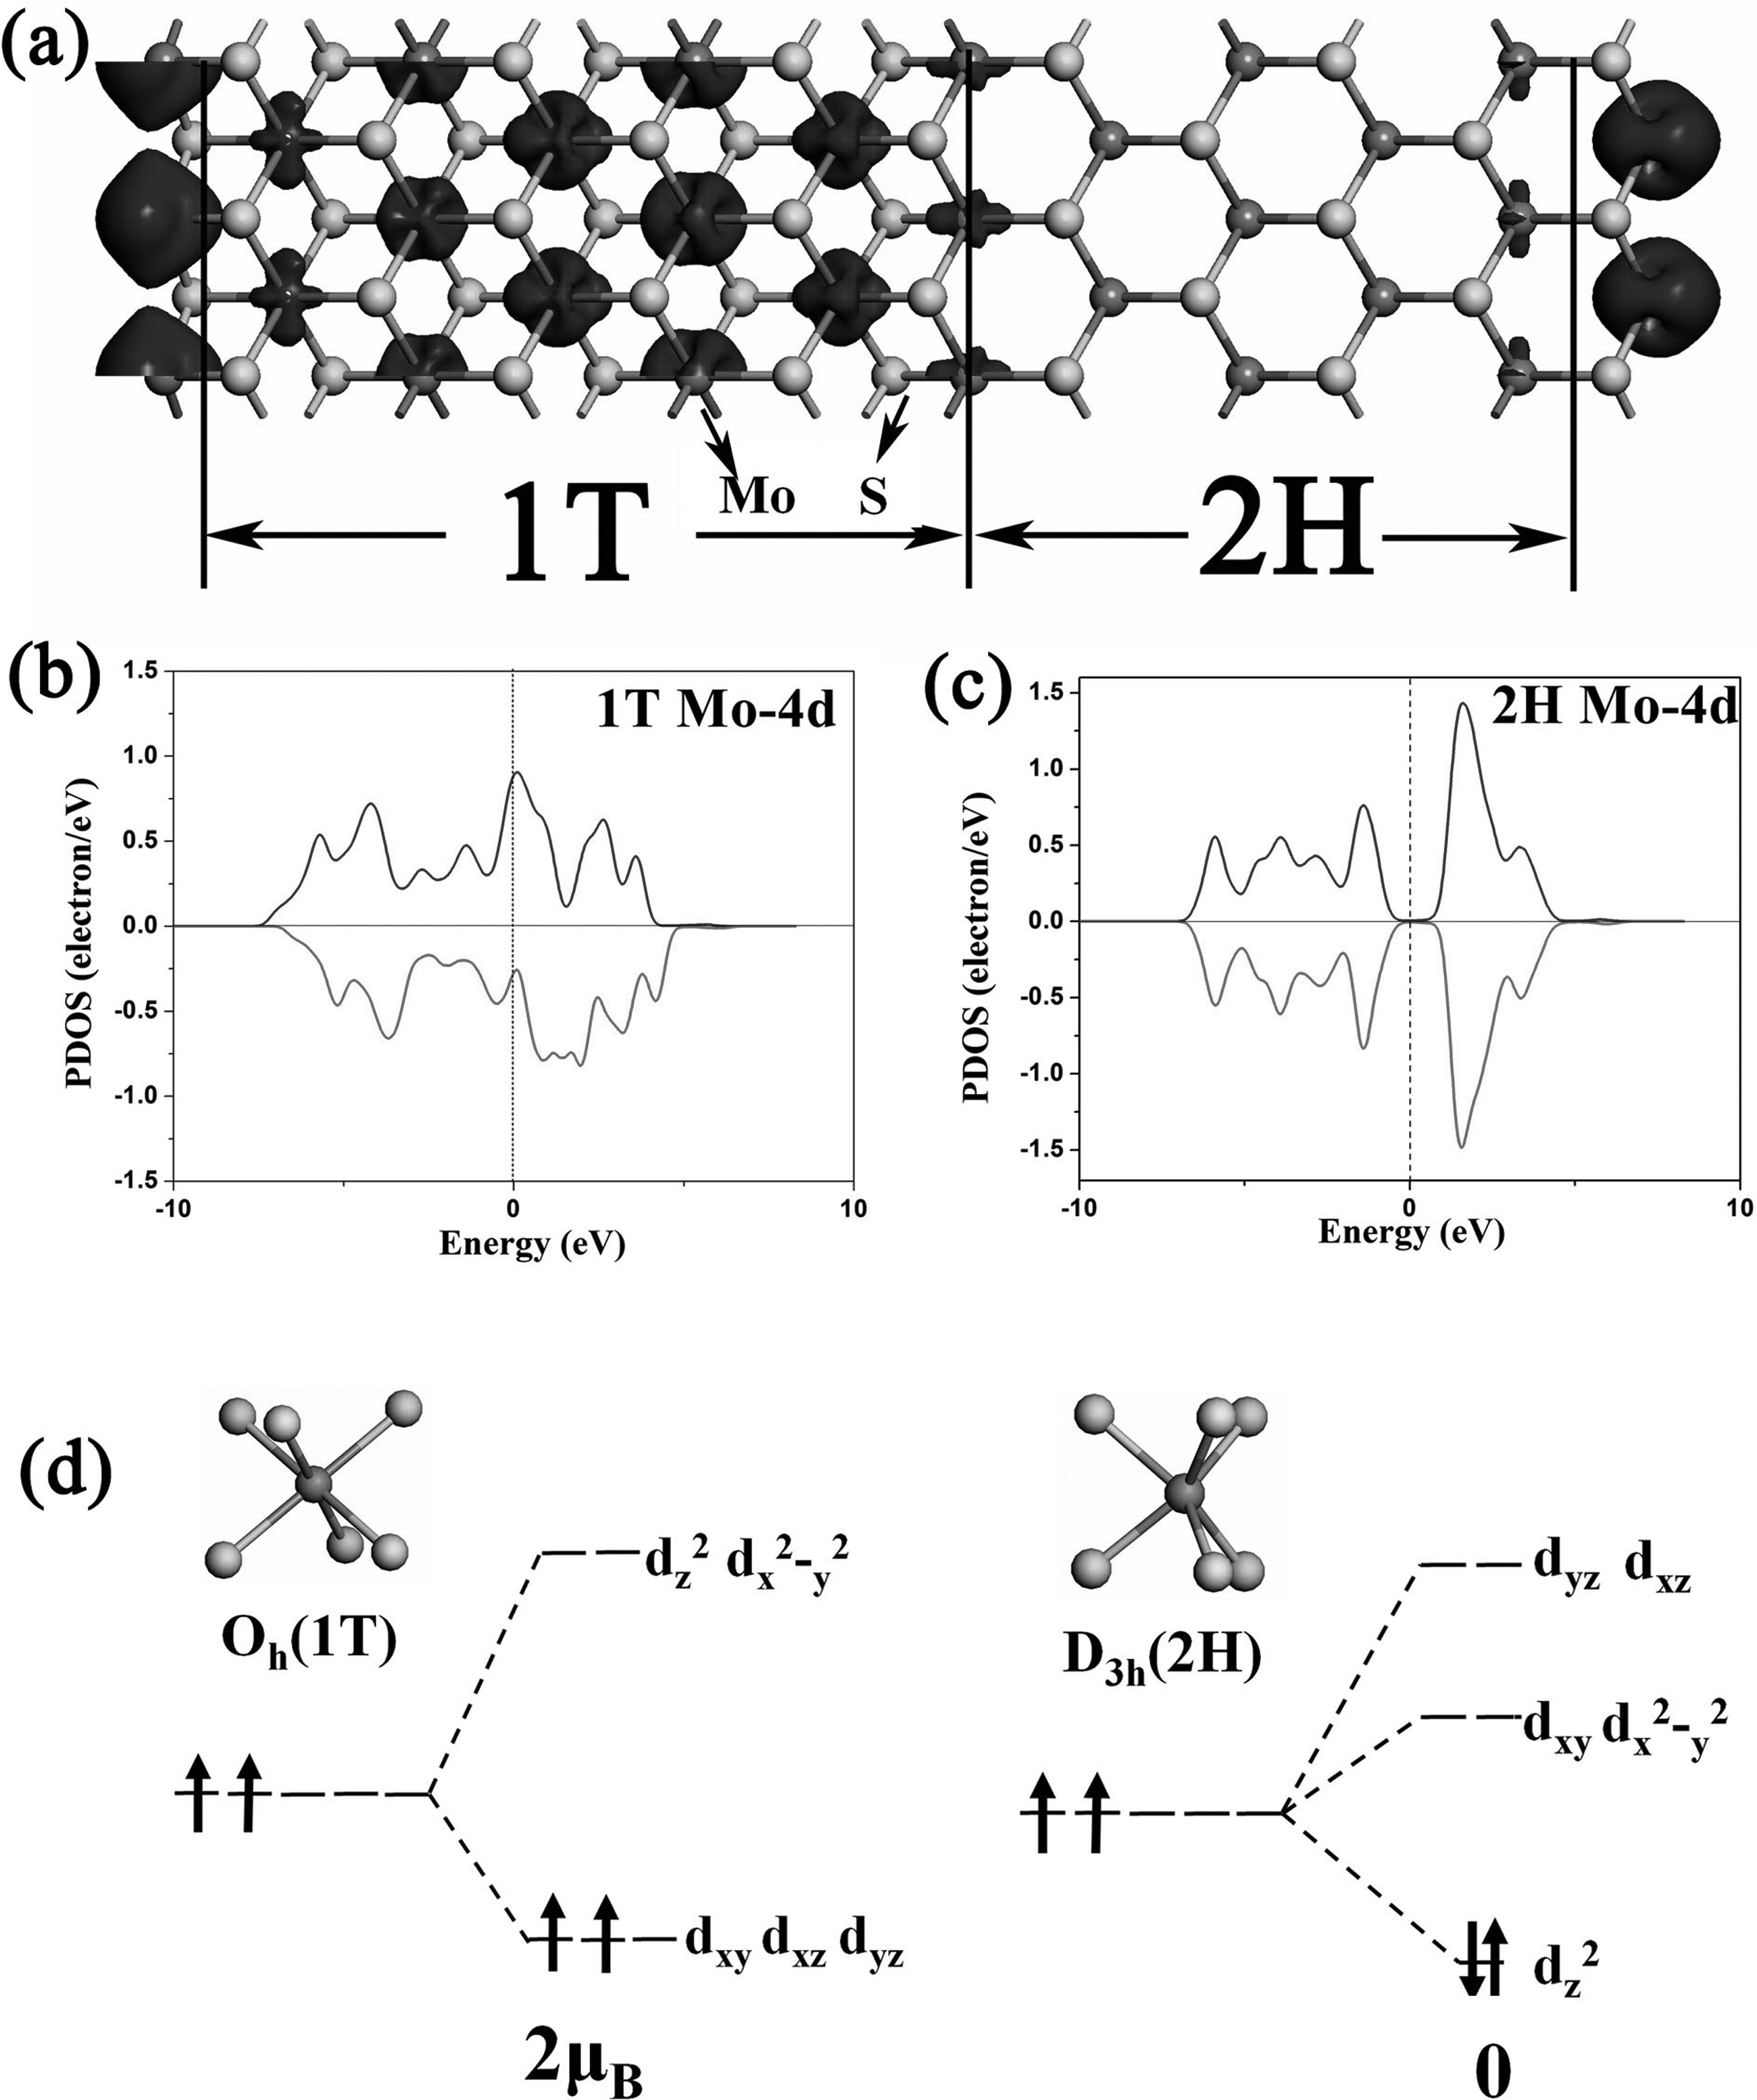 Enhancement of magnetism by structural phase transition in MoS2